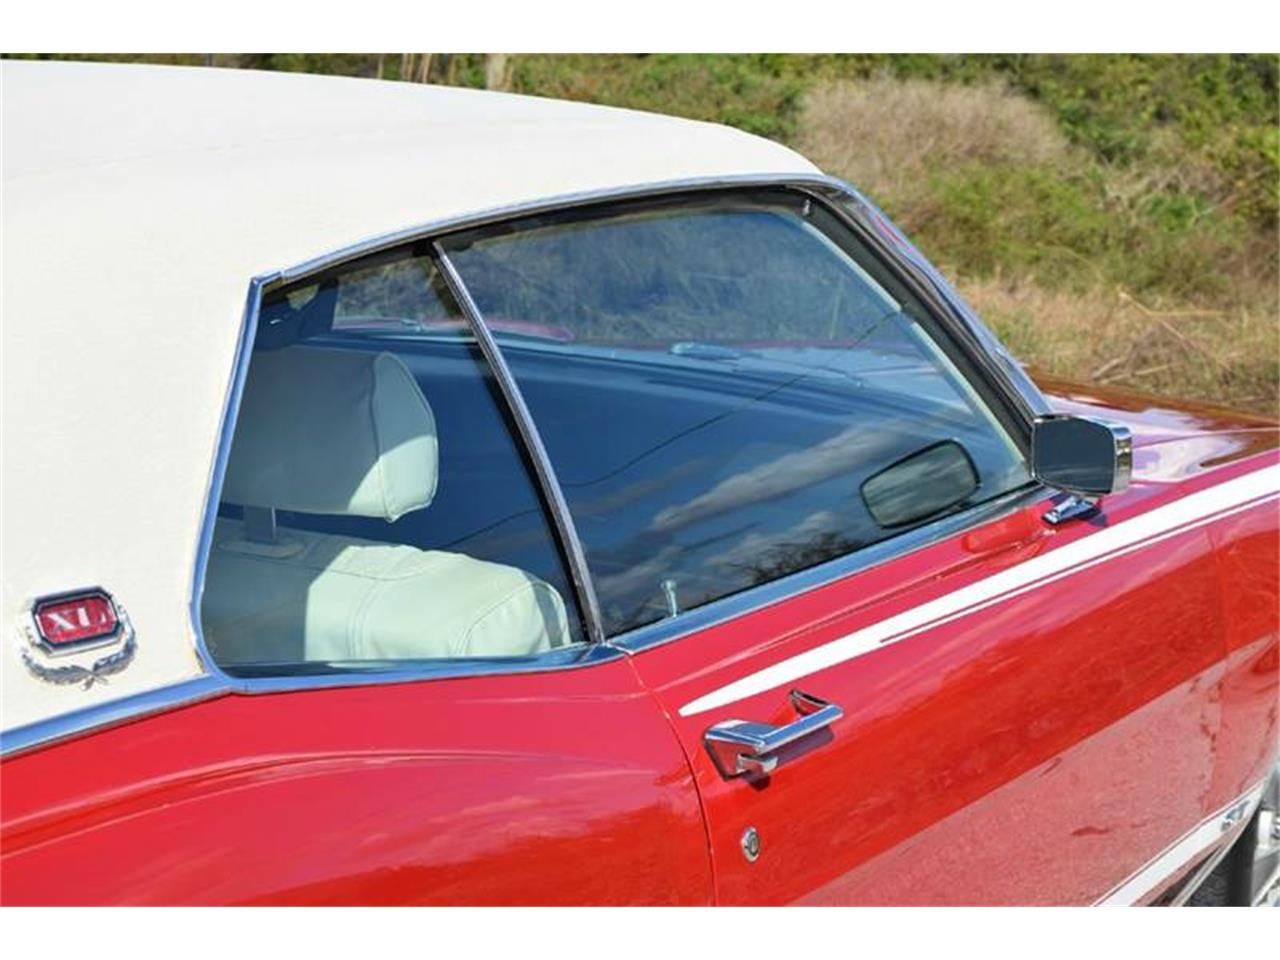 Large Picture of 1969 LTD Auction Vehicle Offered by Orlando Classic Cars - GIKI